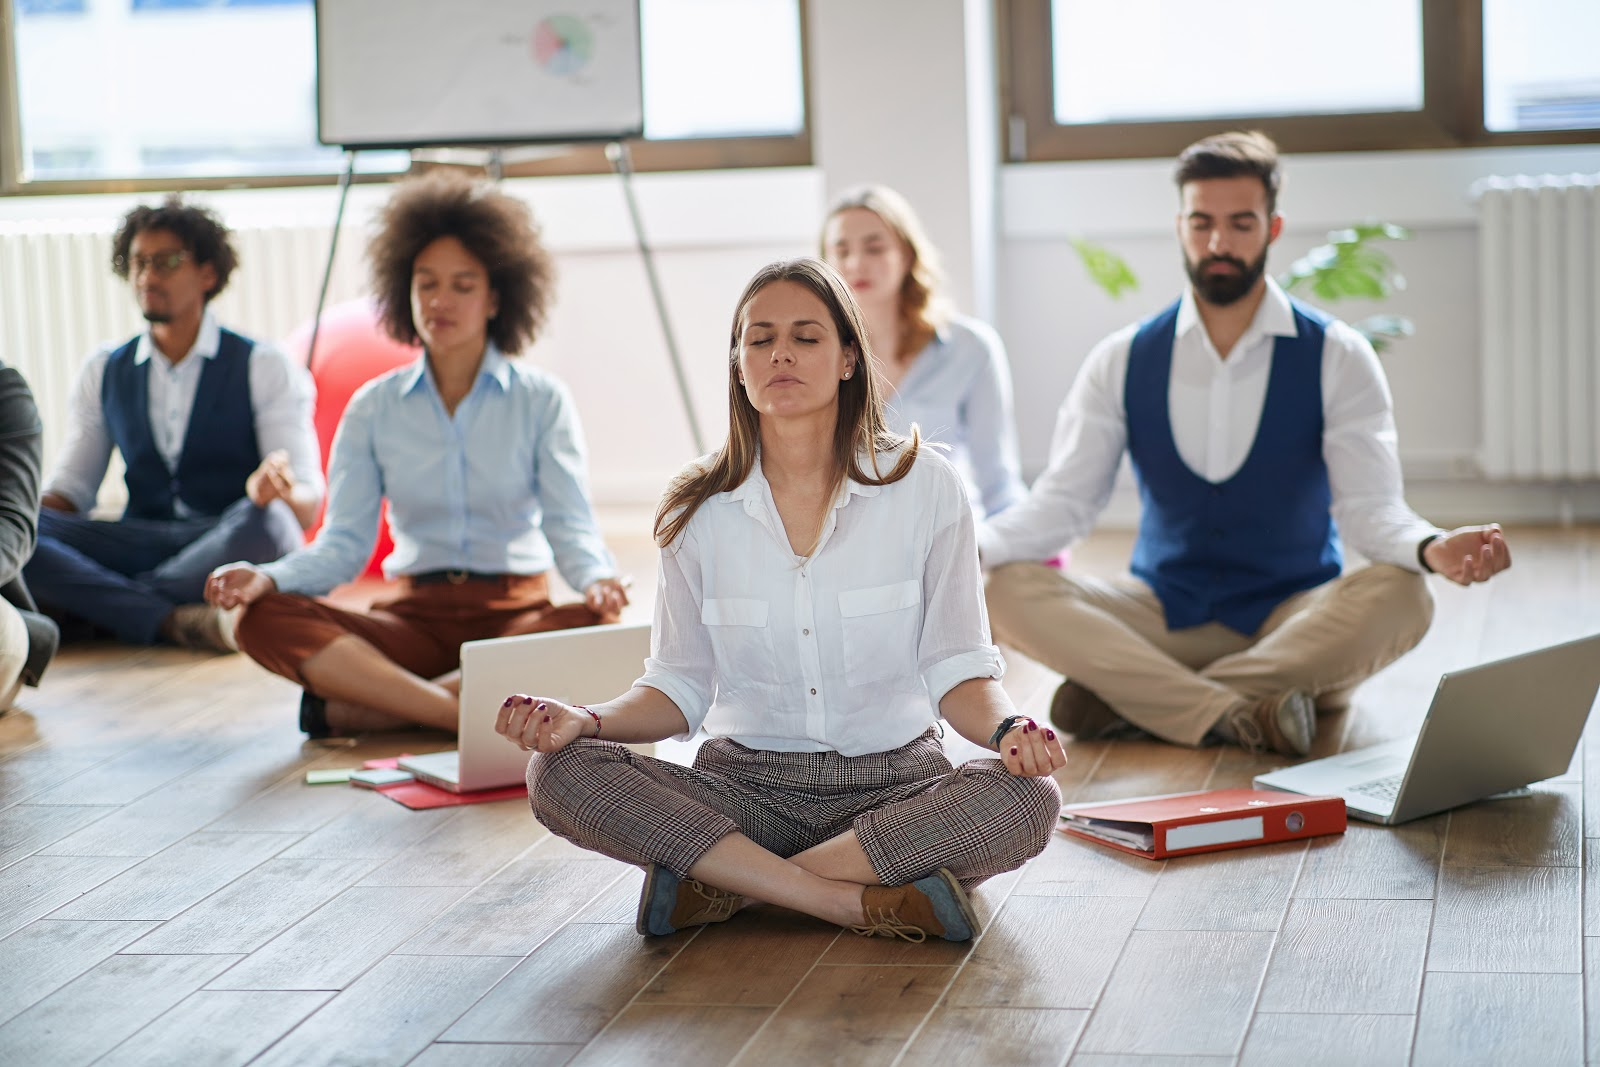 most common interview questions: group of people meditating